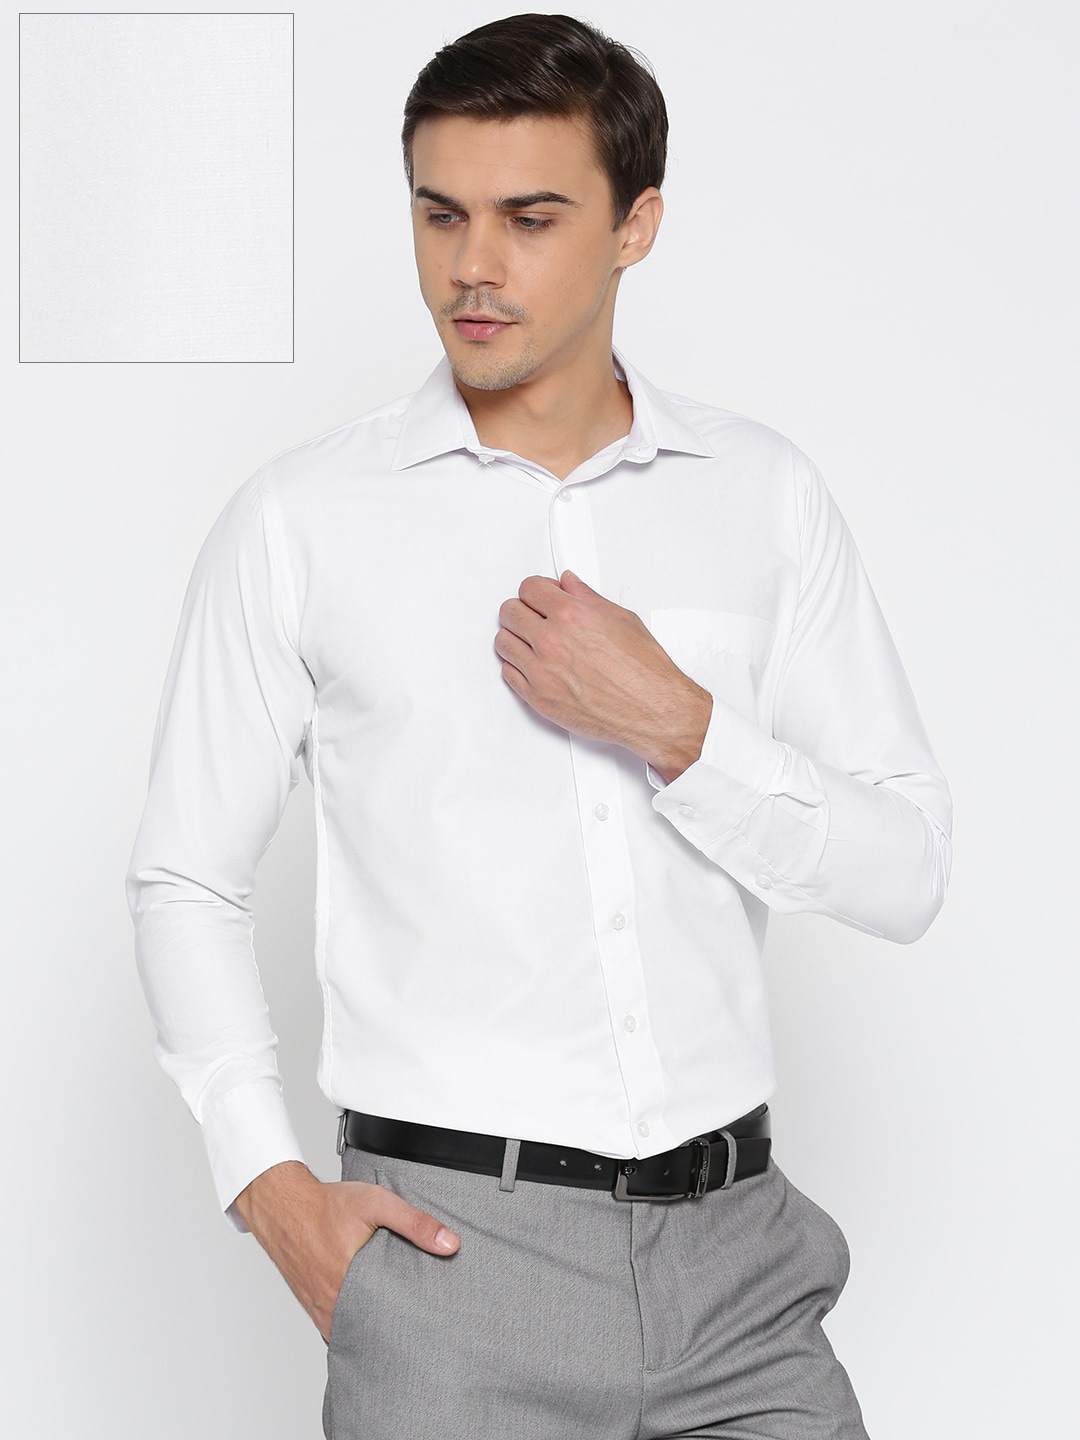 White Shirt Buy White Shirt Online In India